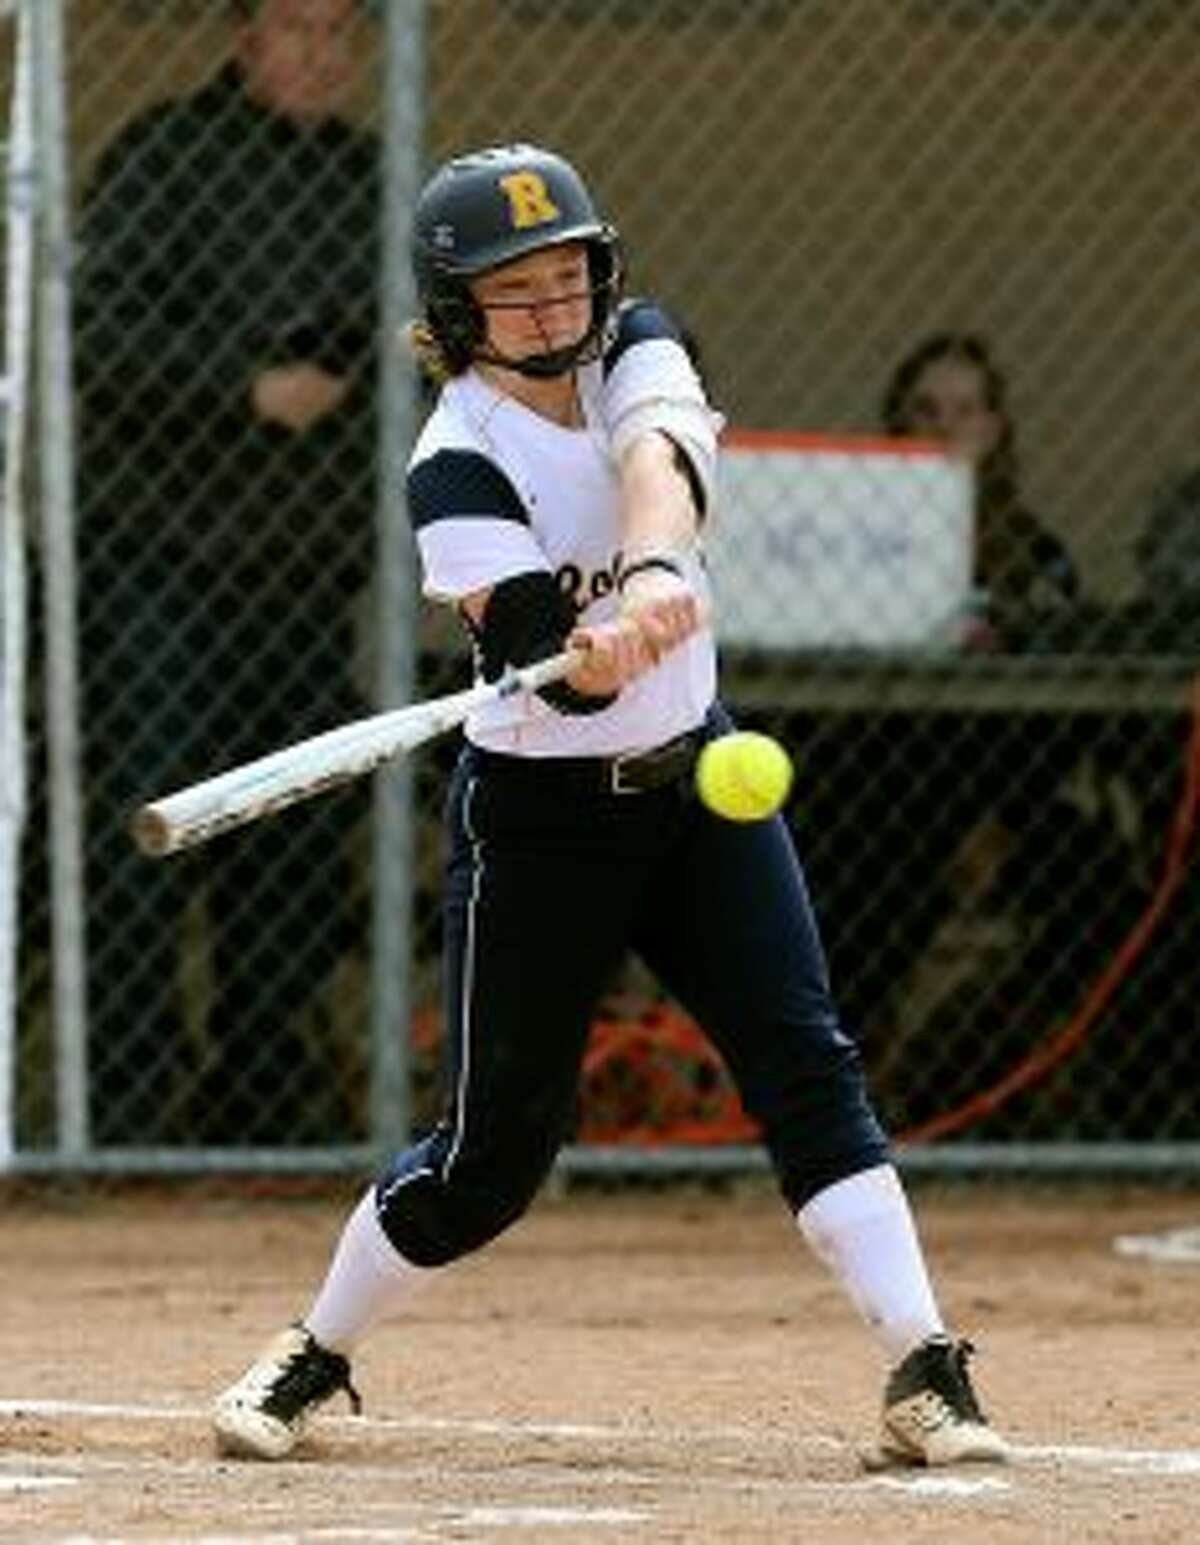 Harleigh Kaczegowicz is both an Academic all-star and the University of Rochester's leading batter. - University of Rochester photo